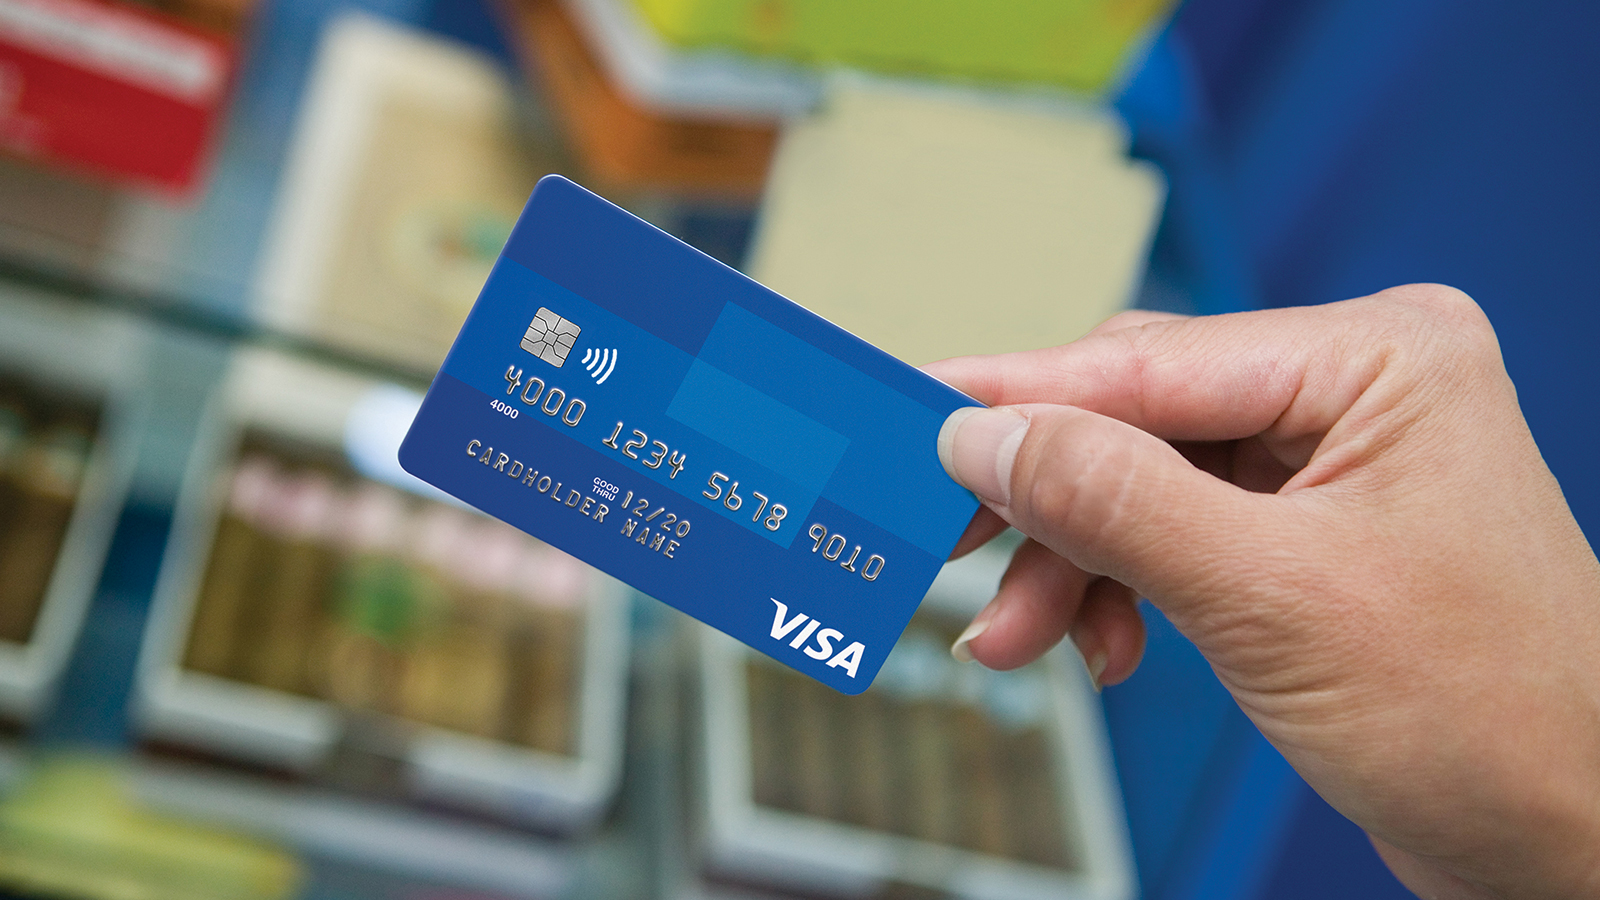 card-closeup-merchant-1600x900